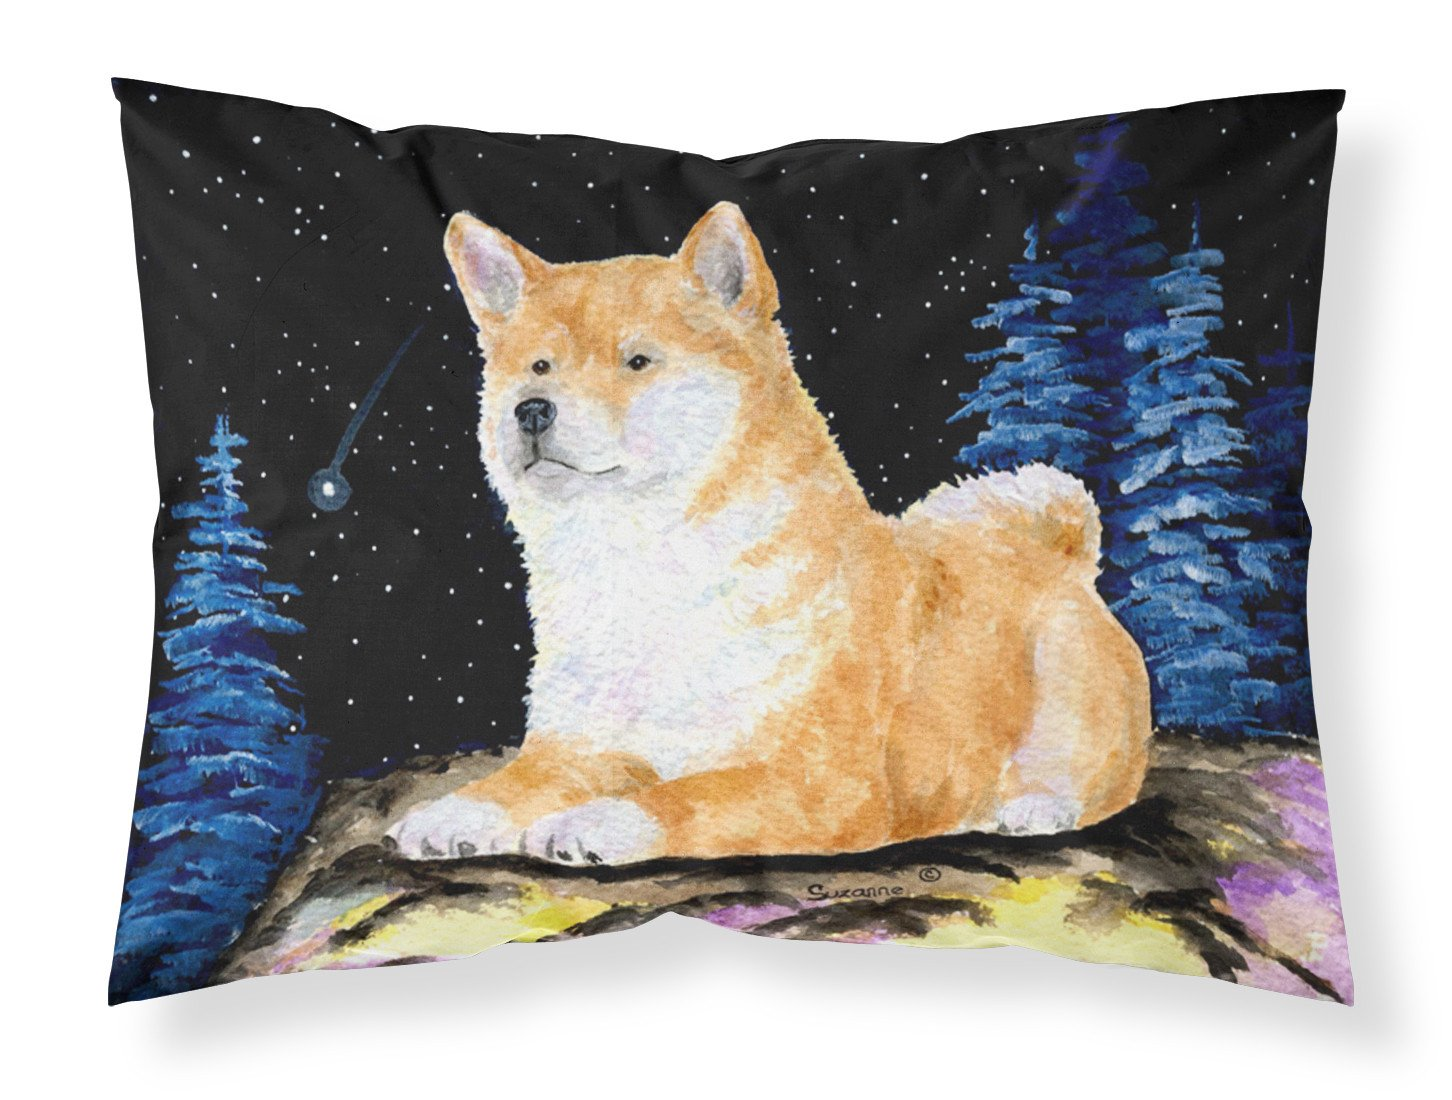 Starry Night Shiba Inu Moisture wicking Fabric standard pillowcase by Caroline's Treasures